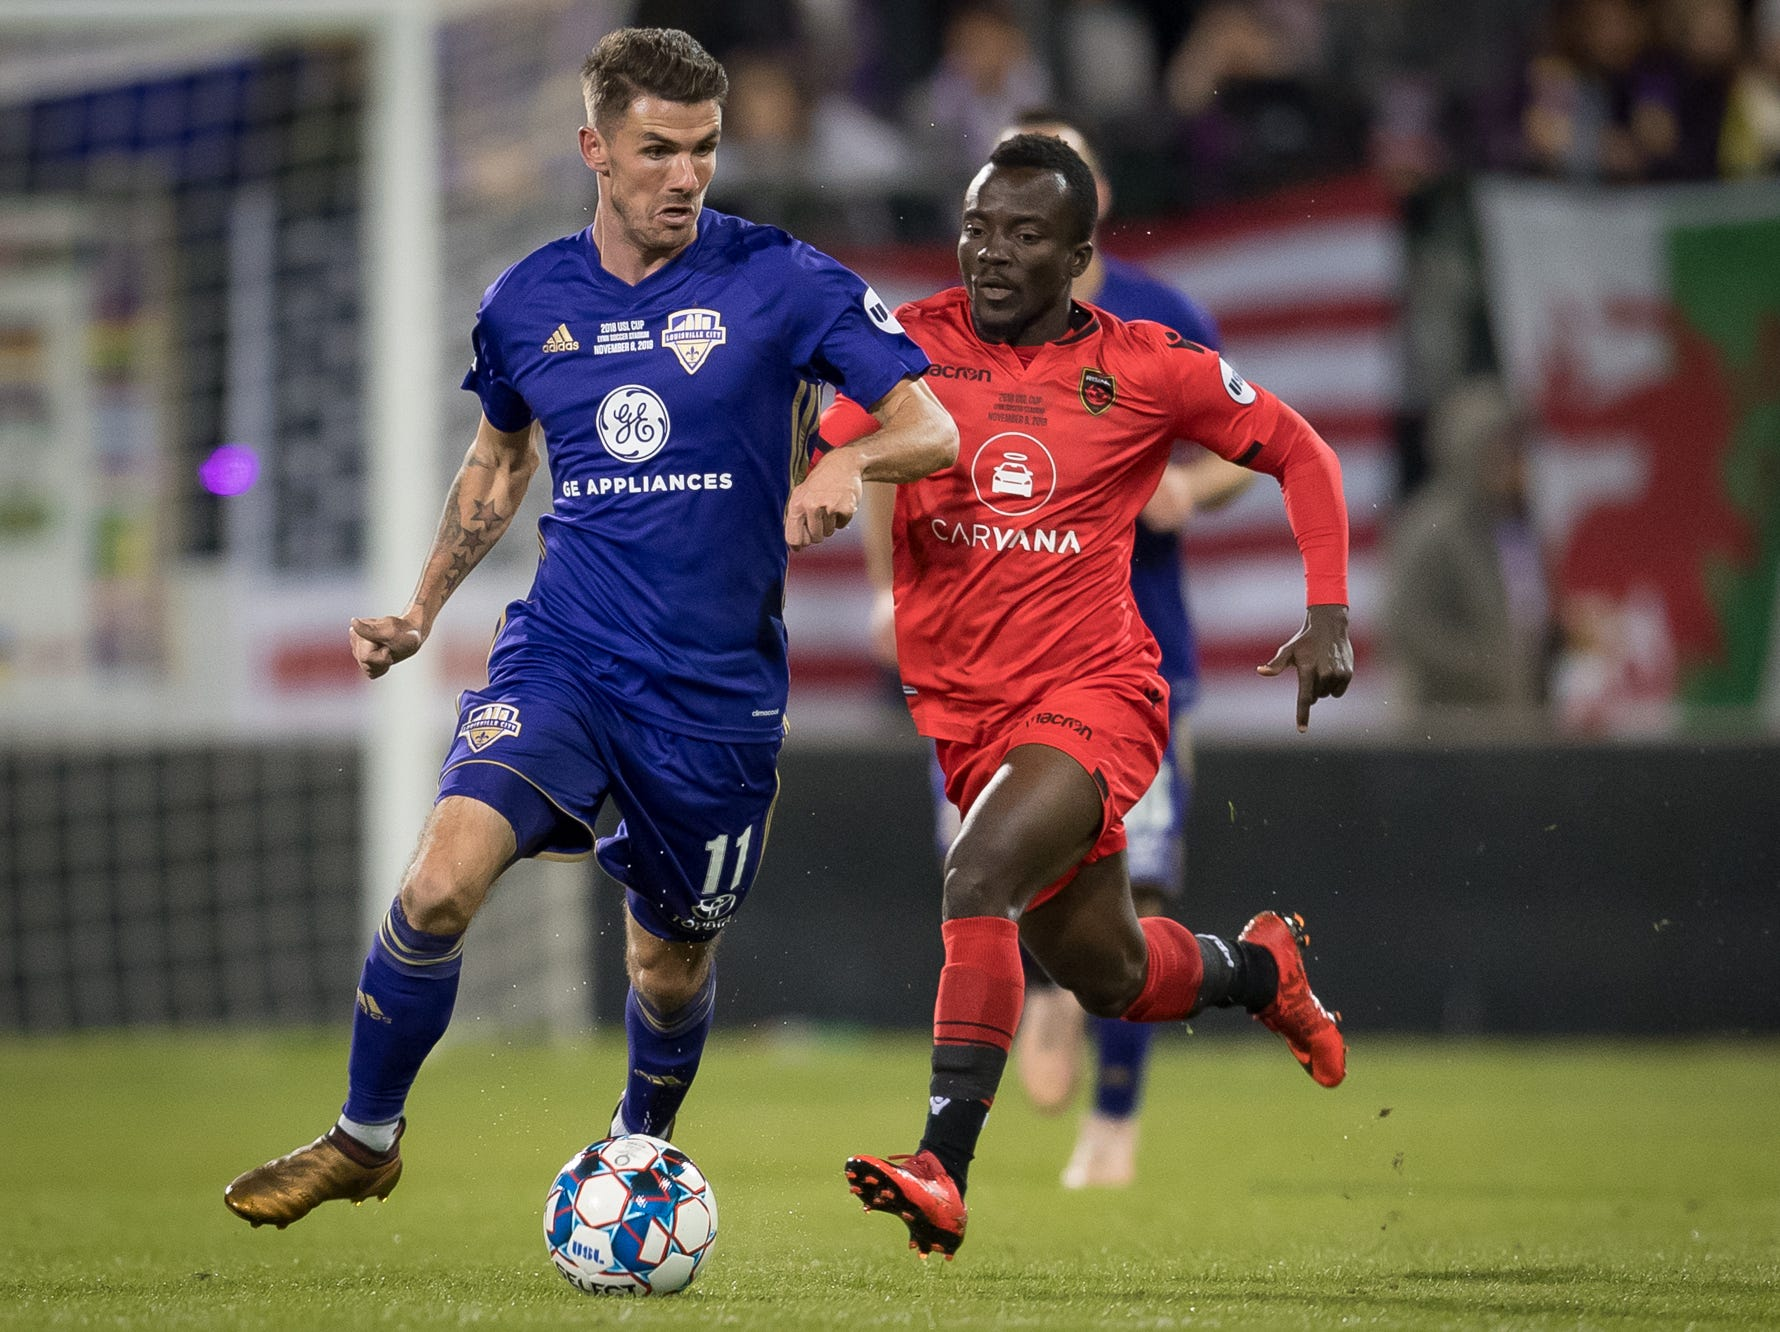 during the USL Cup final played at Lynn Stadium on the campus of the University of Louisville, Louisville, Ky., Thursday, Nov., 8, 2018.